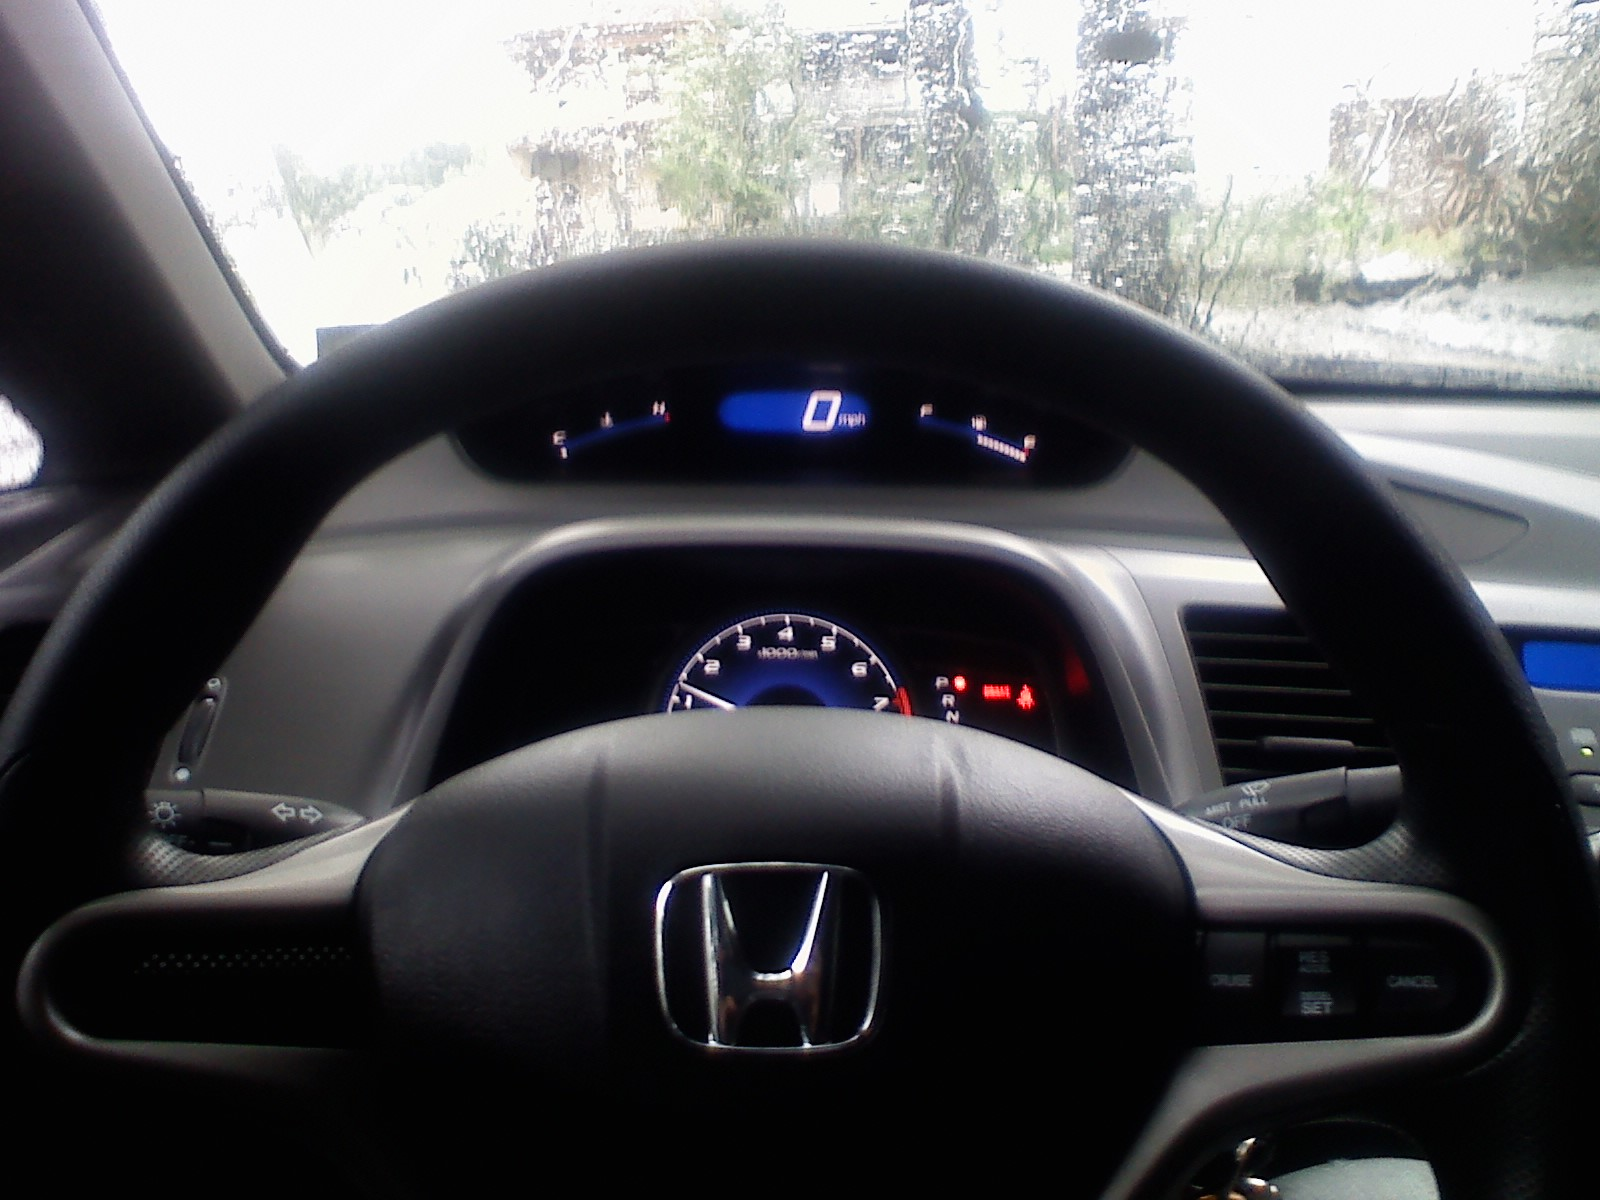 Honda Civic 2009 Interior 2009 Honda Civi...